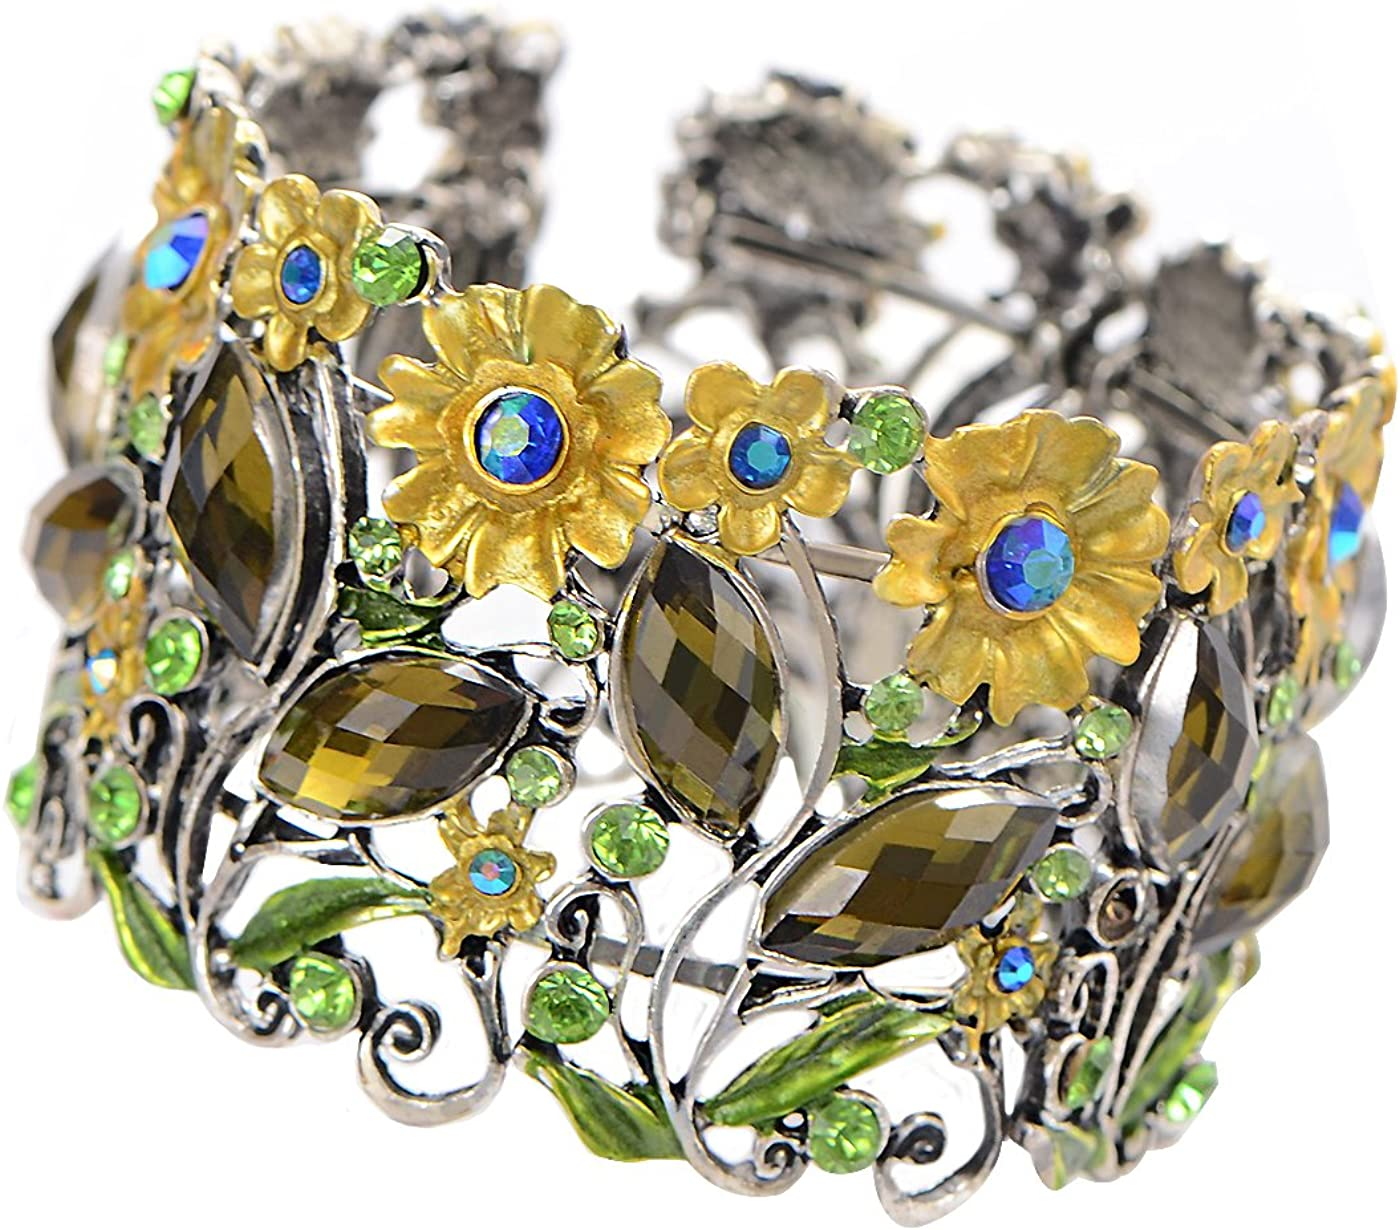 Alilang Antique Hollow Filligree Floral Crystal Rhinestone Flower Garden Bracelet Bangle Cuff